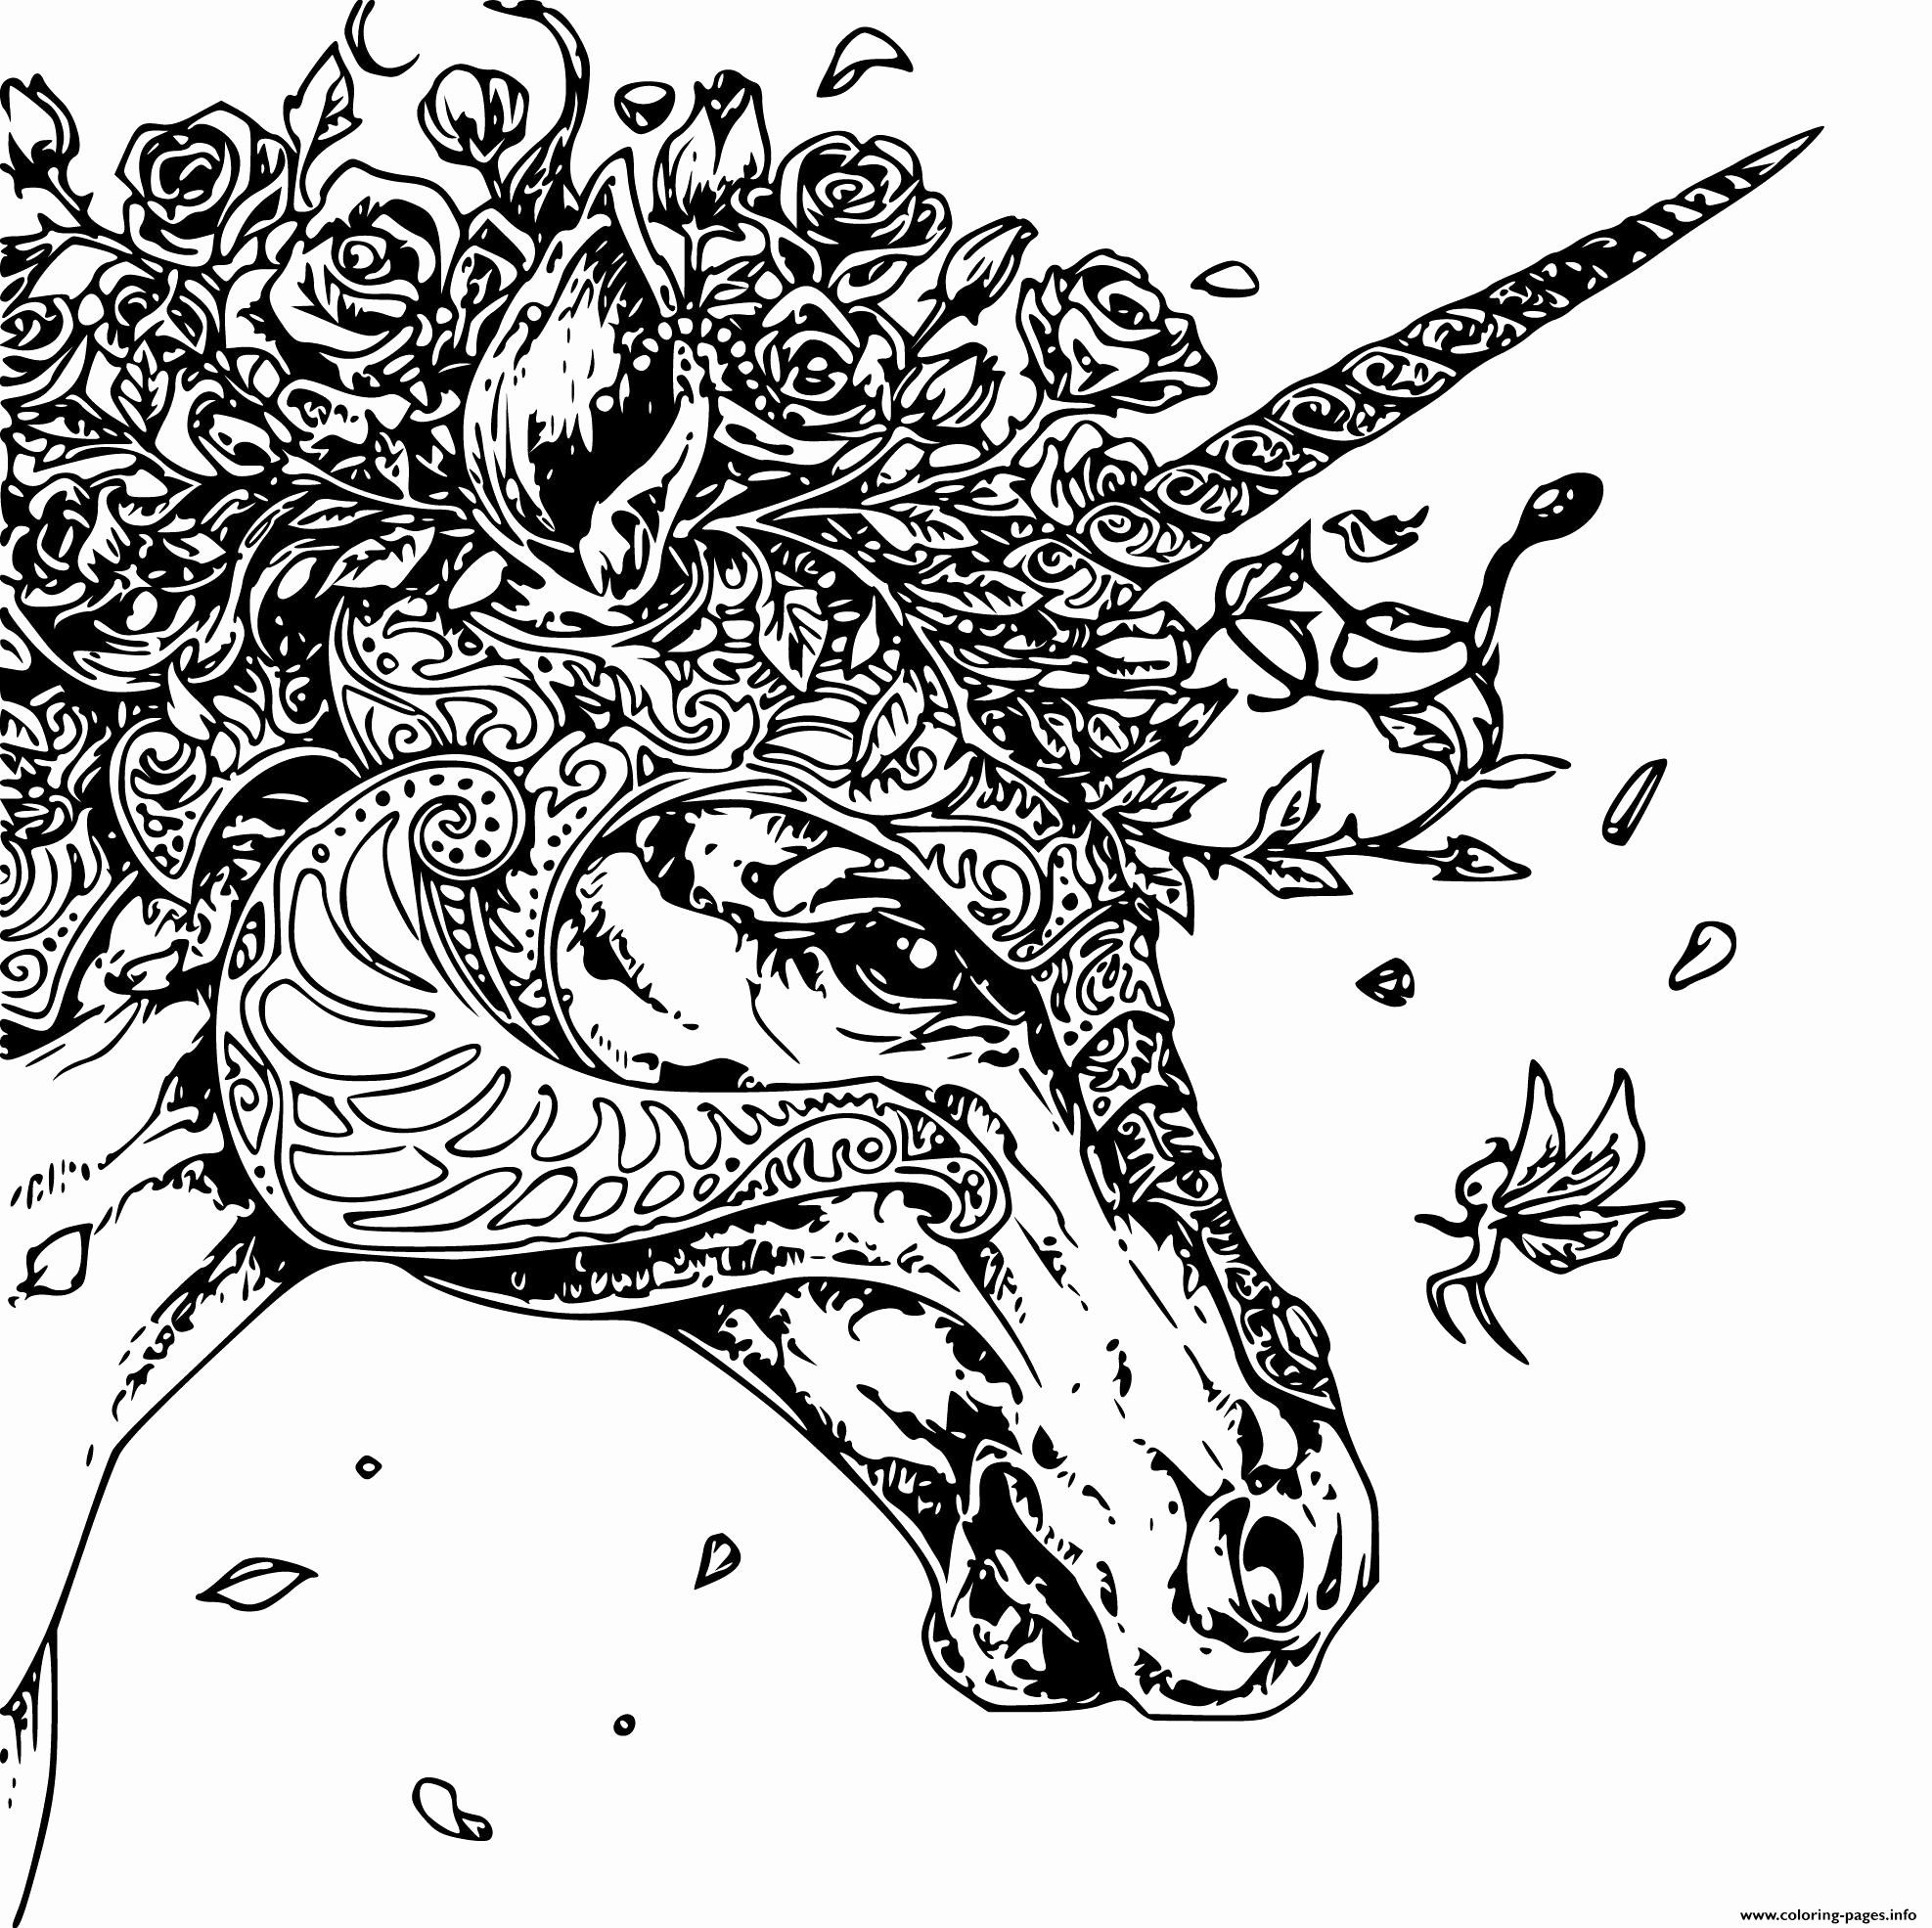 Coloring Pages Of Animal Heads Unique Collection Free Printable Animal Zentangle Coloring Pa Unicorn Coloring Pages Animal Coloring Pages Animal Coloring Books